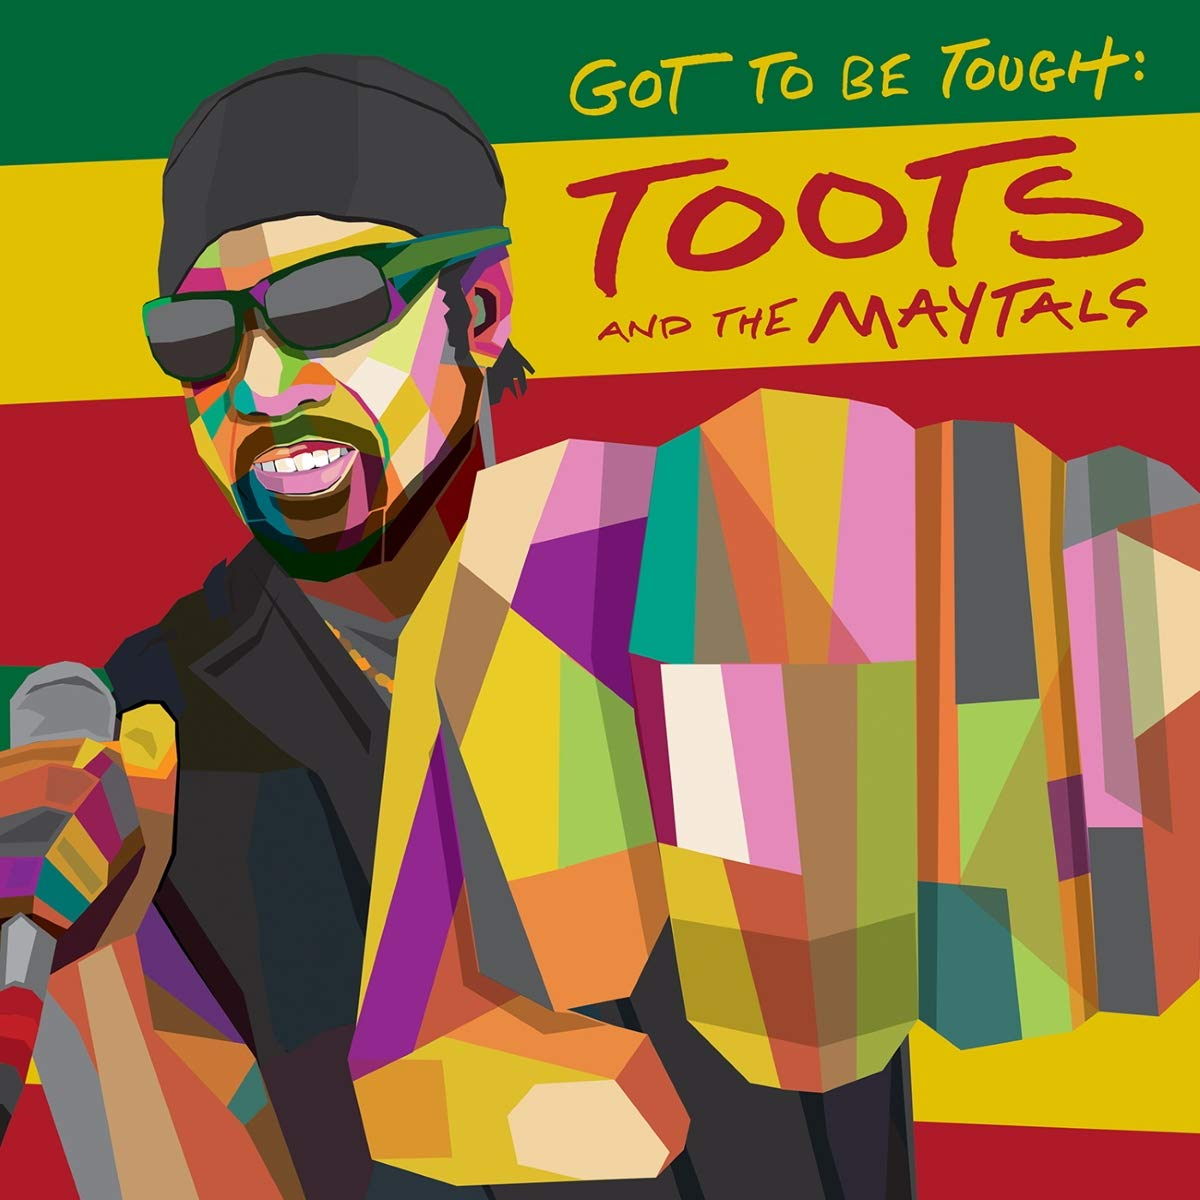 Got to Be Tough: Toots and the Maytals, Toots and the Maytals: Amazon.fr: Musique